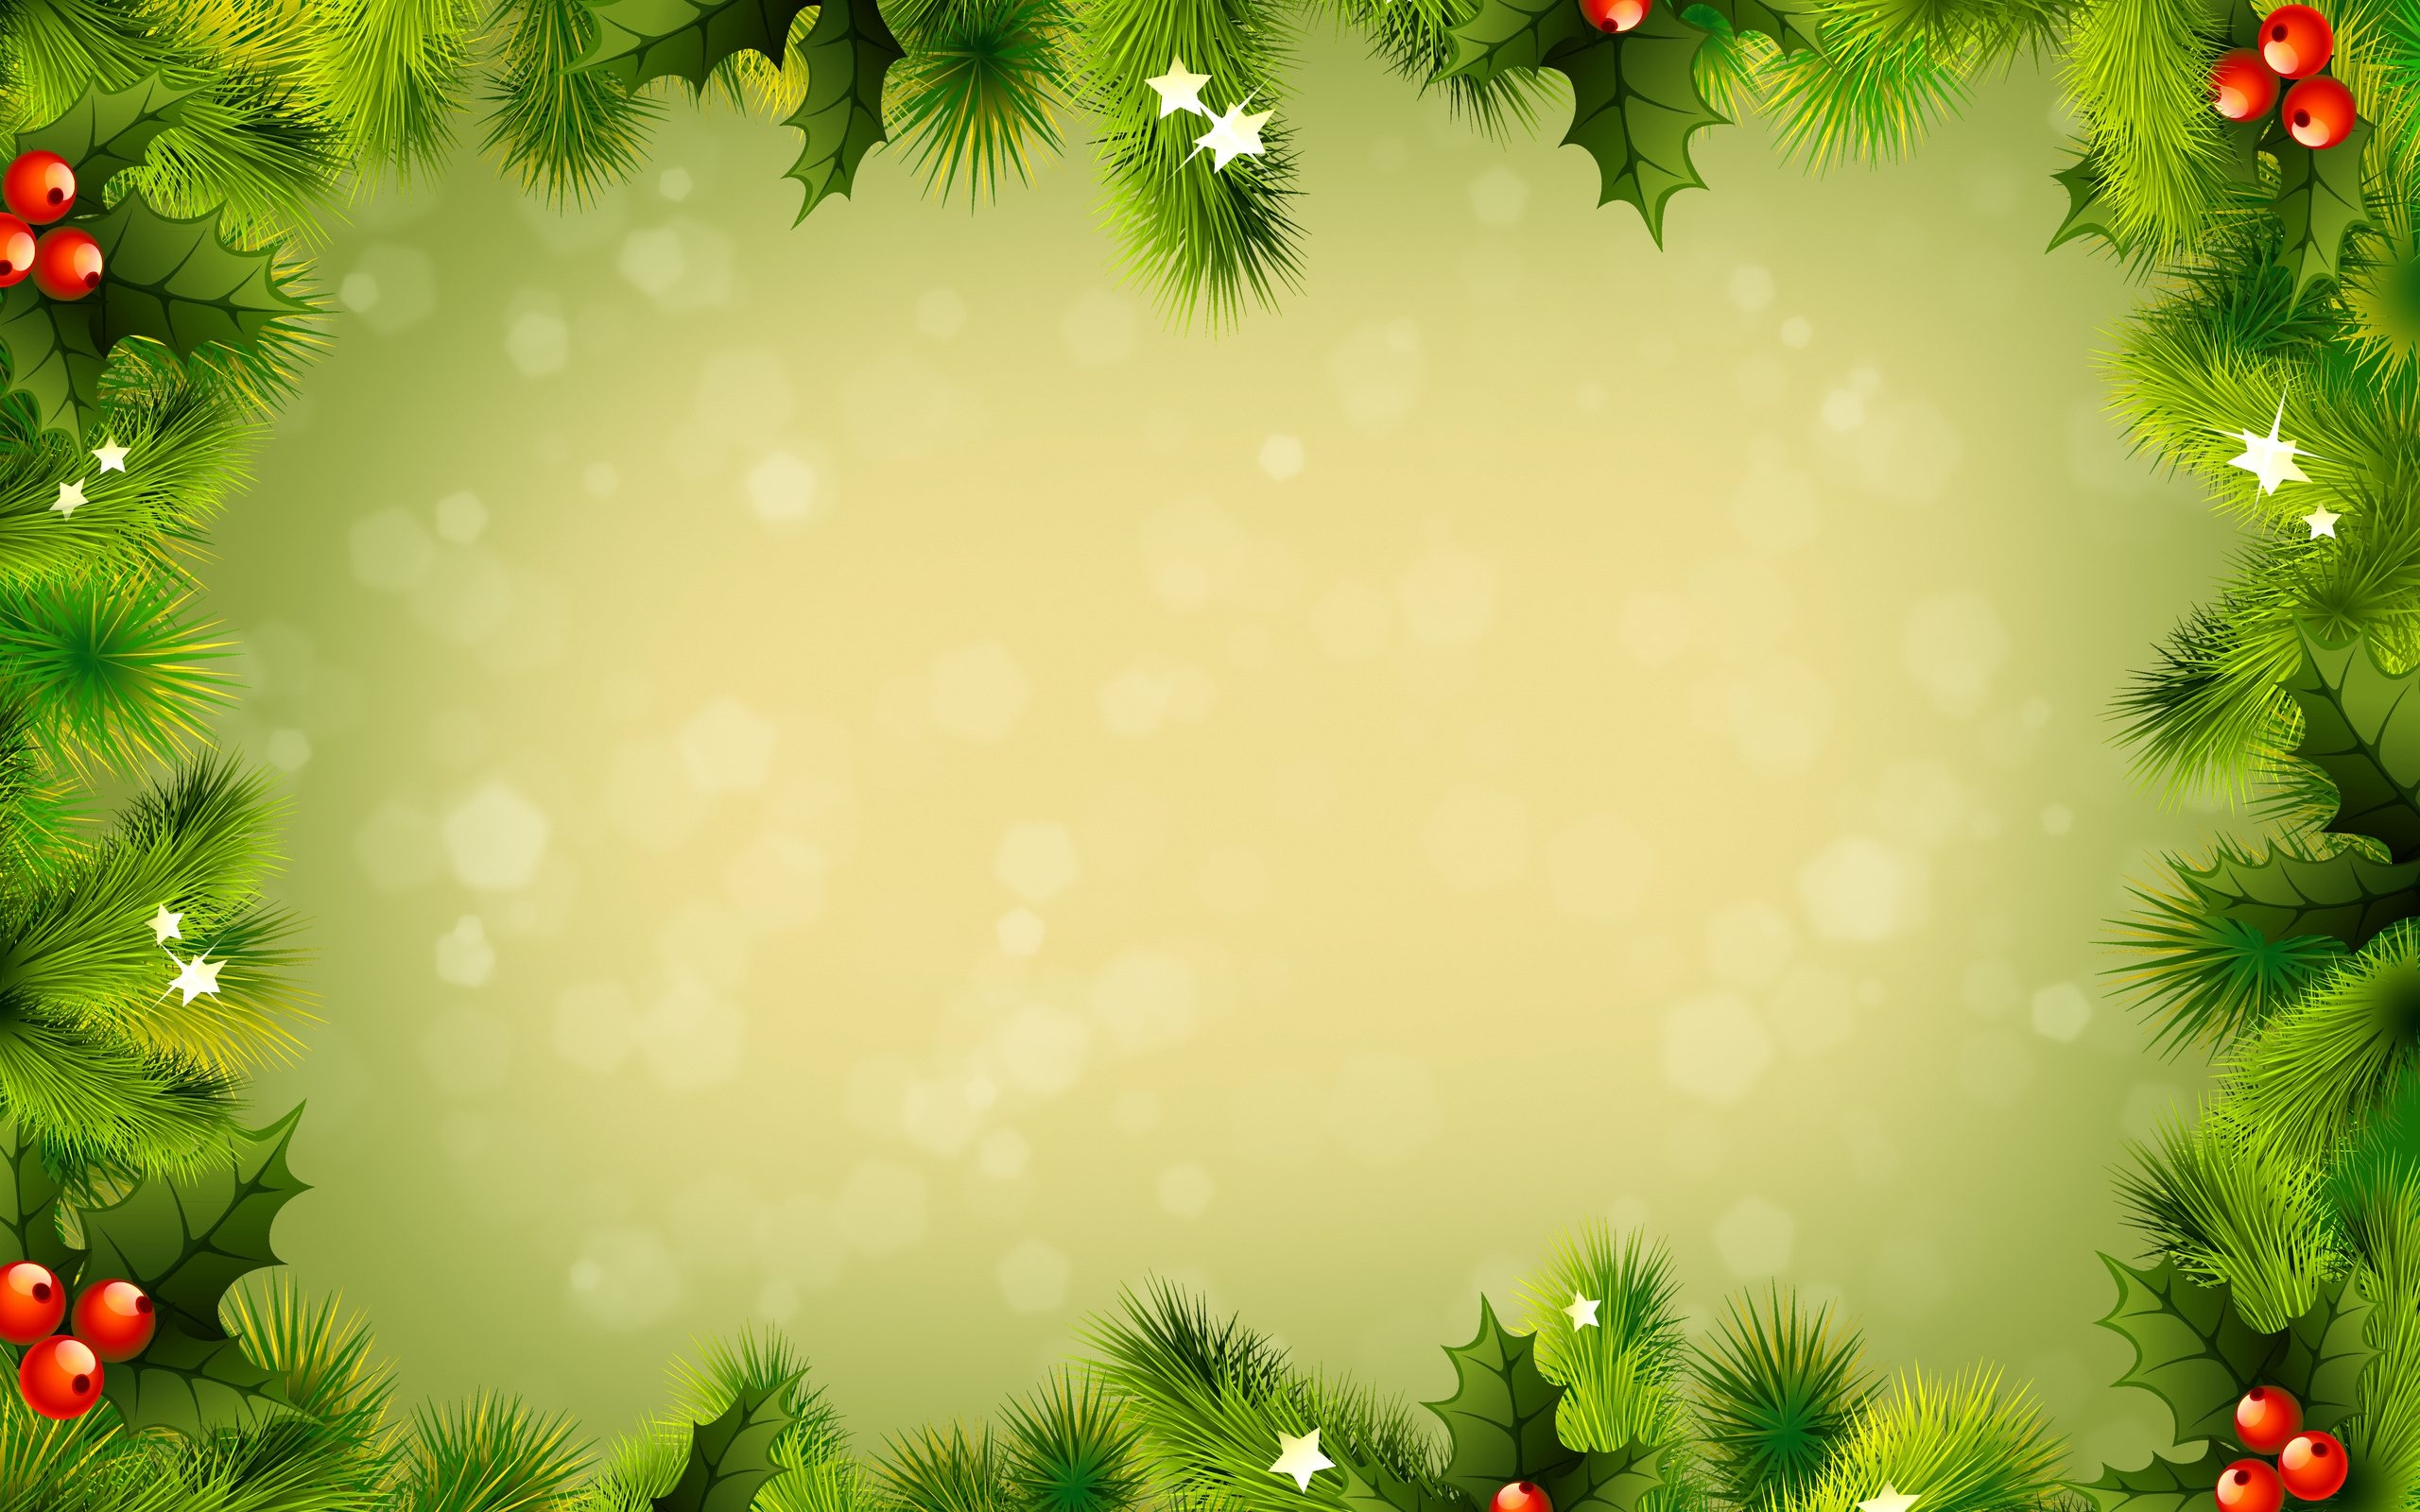 background christmas background share christmas background wallpaper 2560x1600